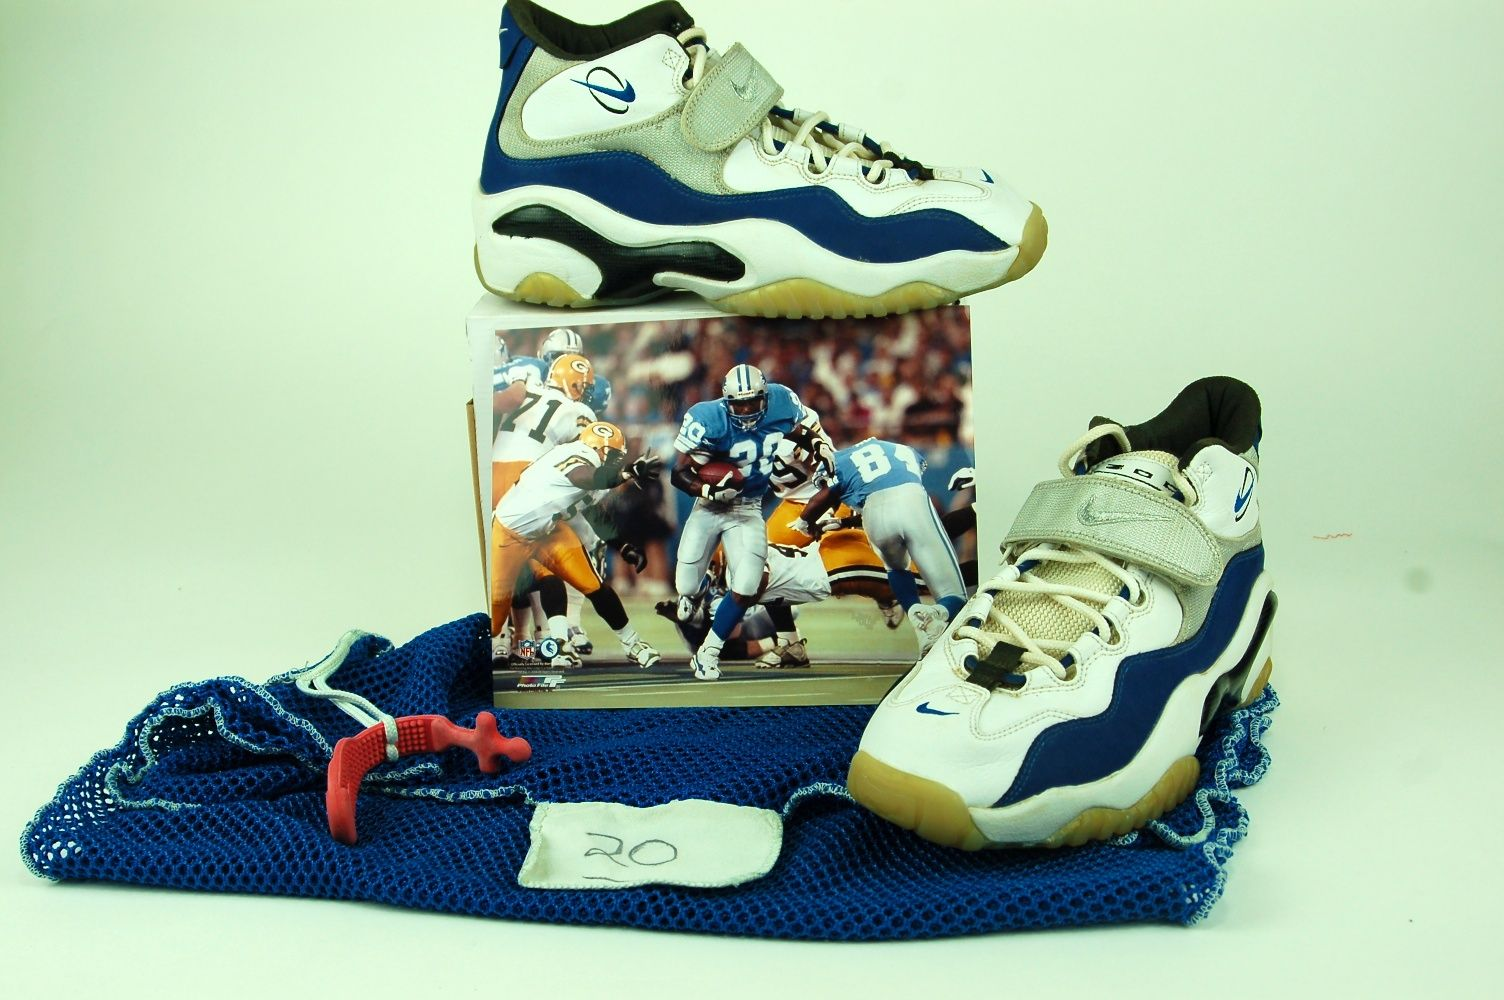 d21fd715f5866 Lot Detail - Barry Sanders Game used Turf Shoes   Laundry Bag w ...